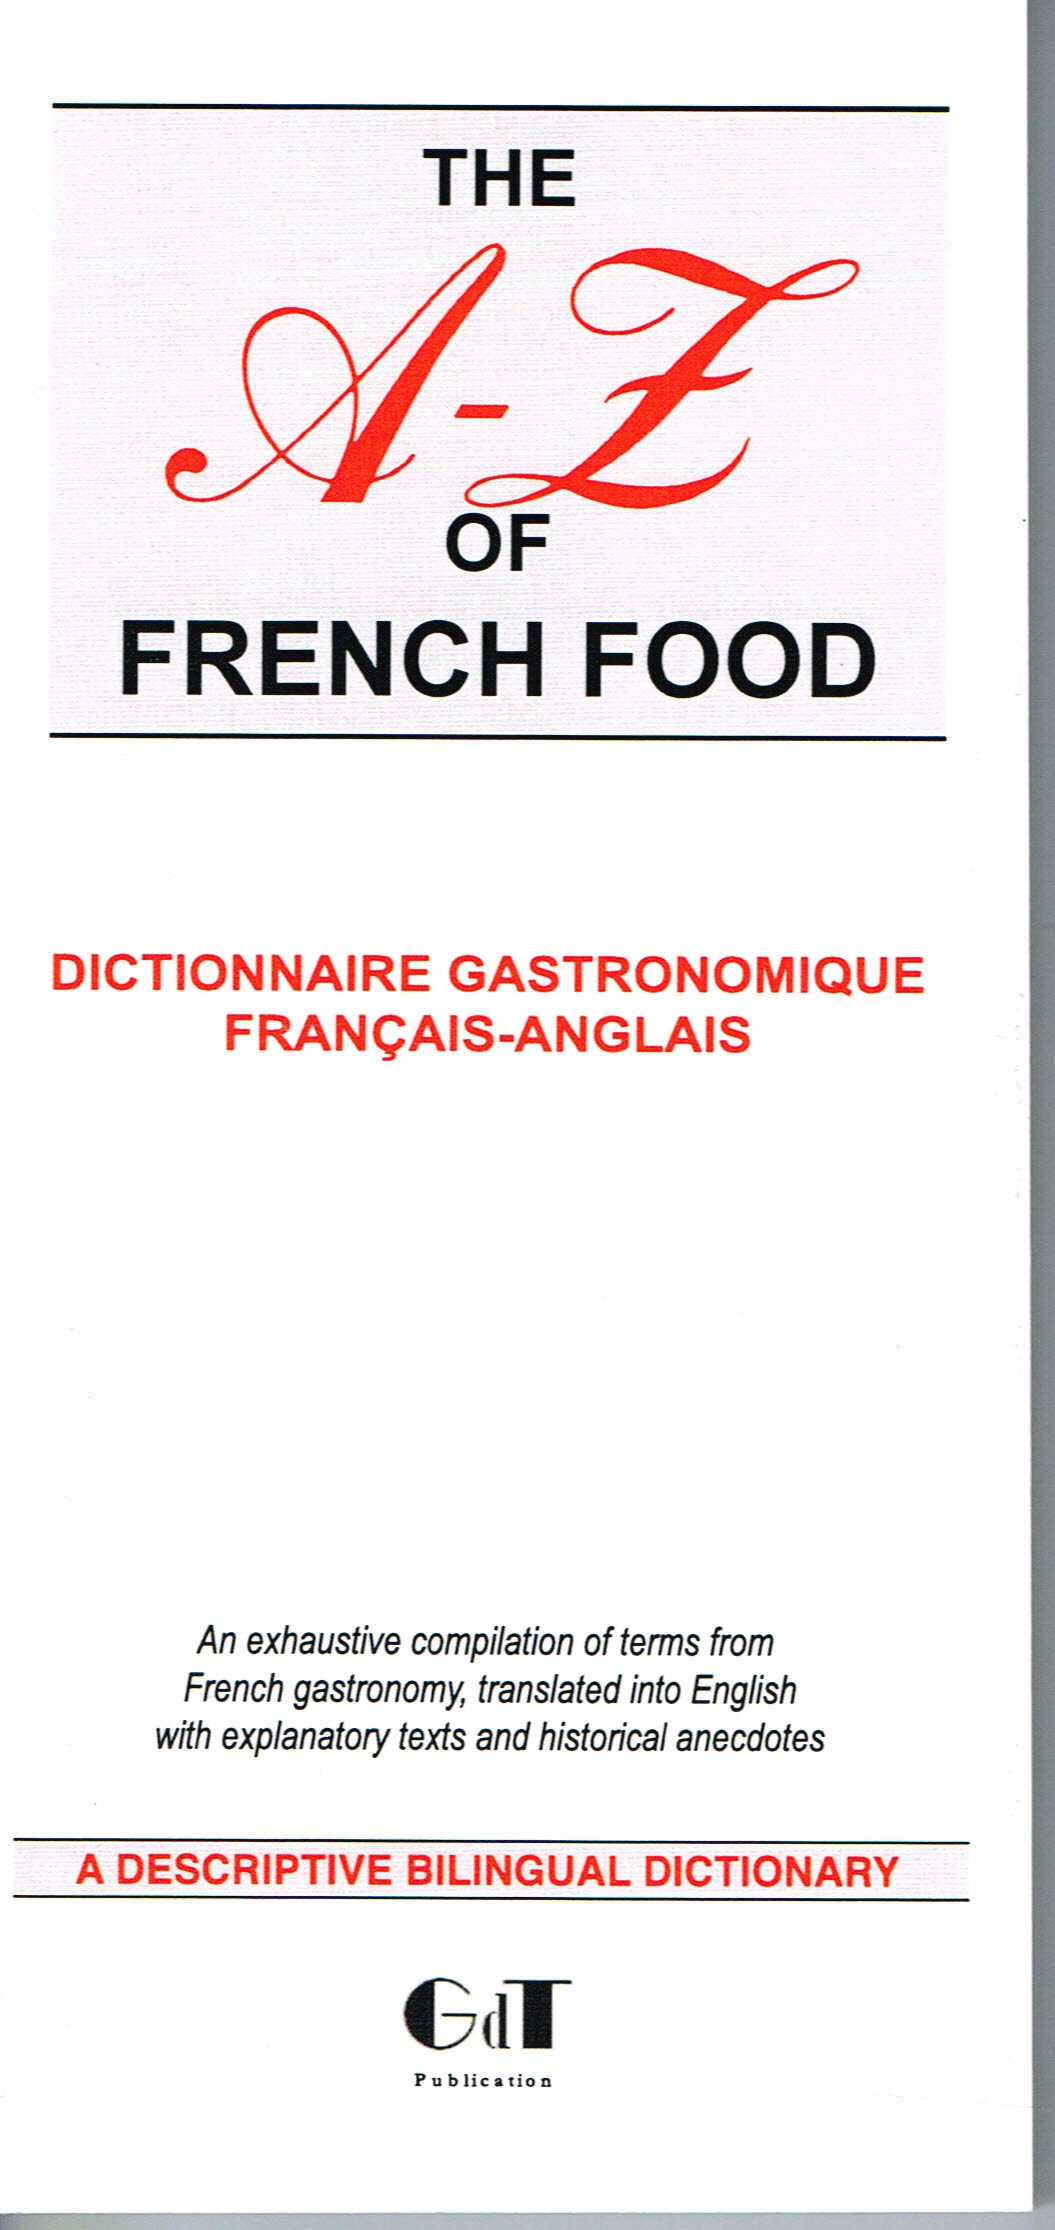 THE A-Z OF FRENCH FOOD (DICTIONNAIRE GASTRONOMIQUE FRANCAIS-ANGLAIS)